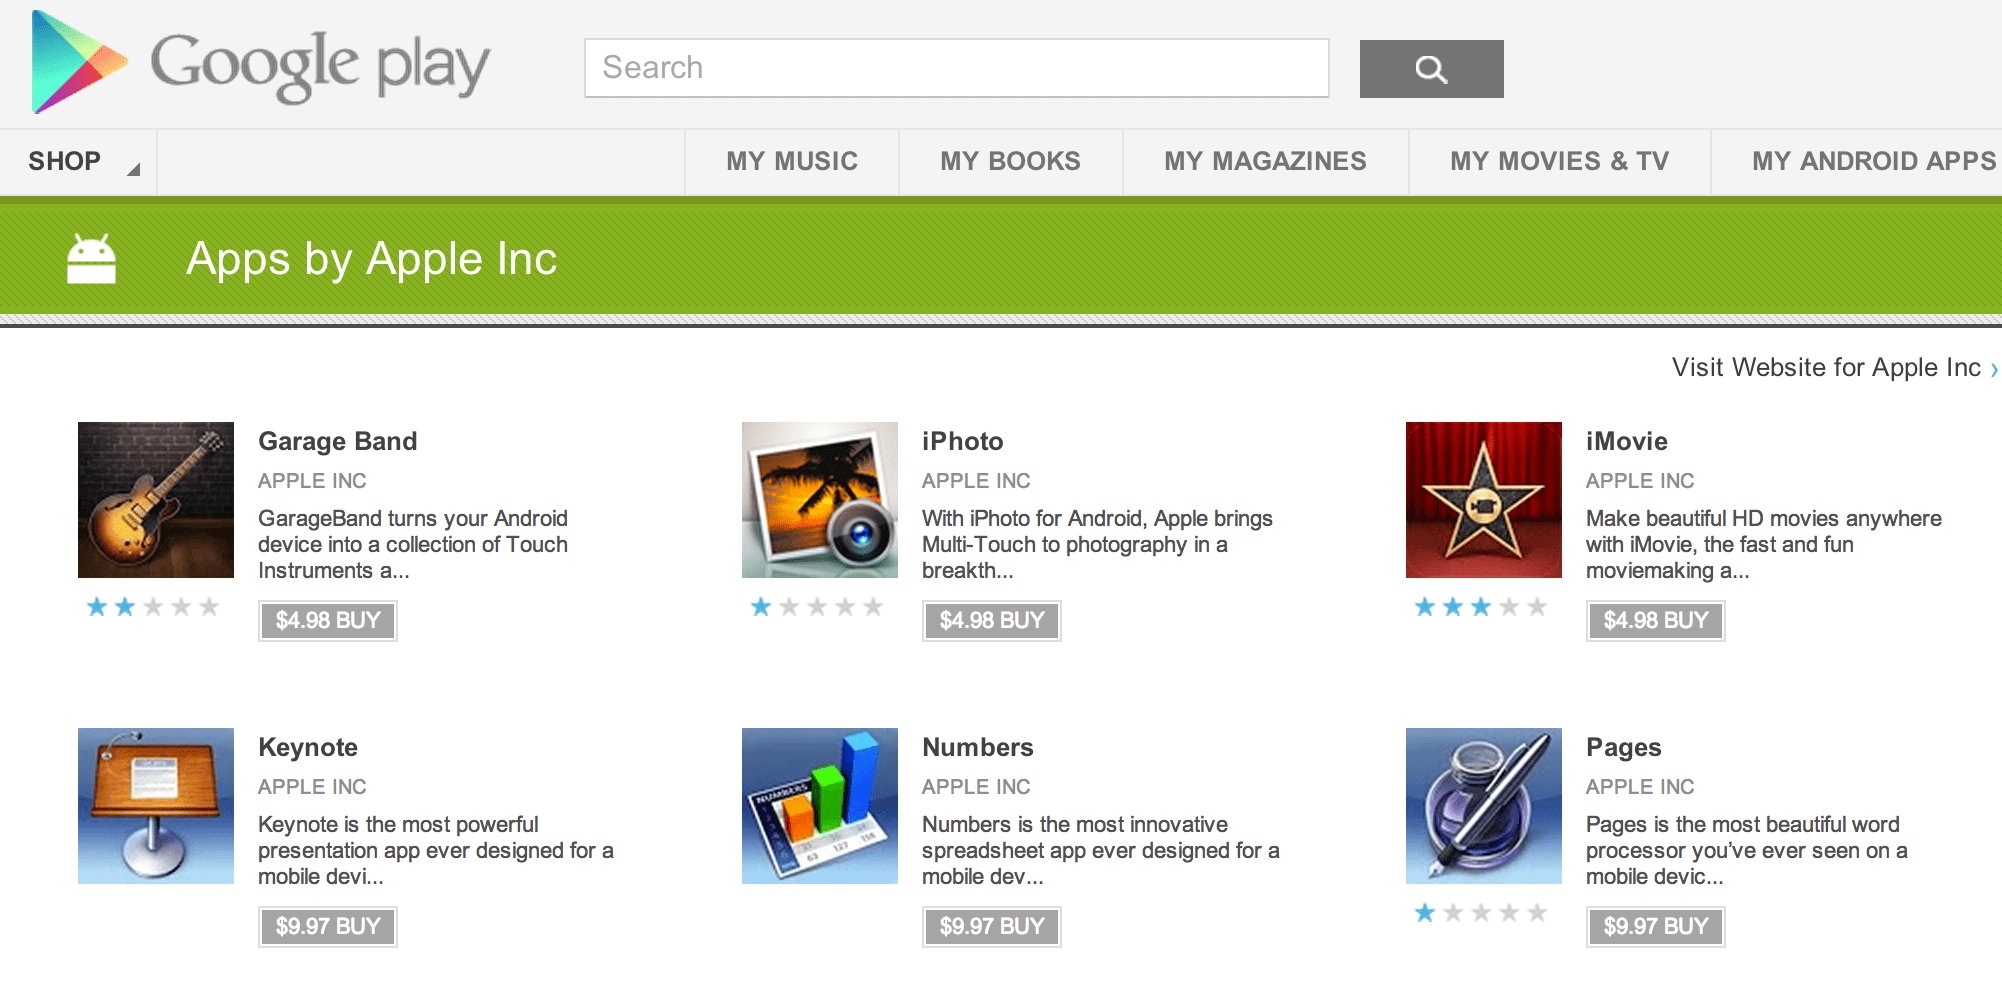 Garageband On Android Fake Apps From Apple Inc End Up On Google Play Market For